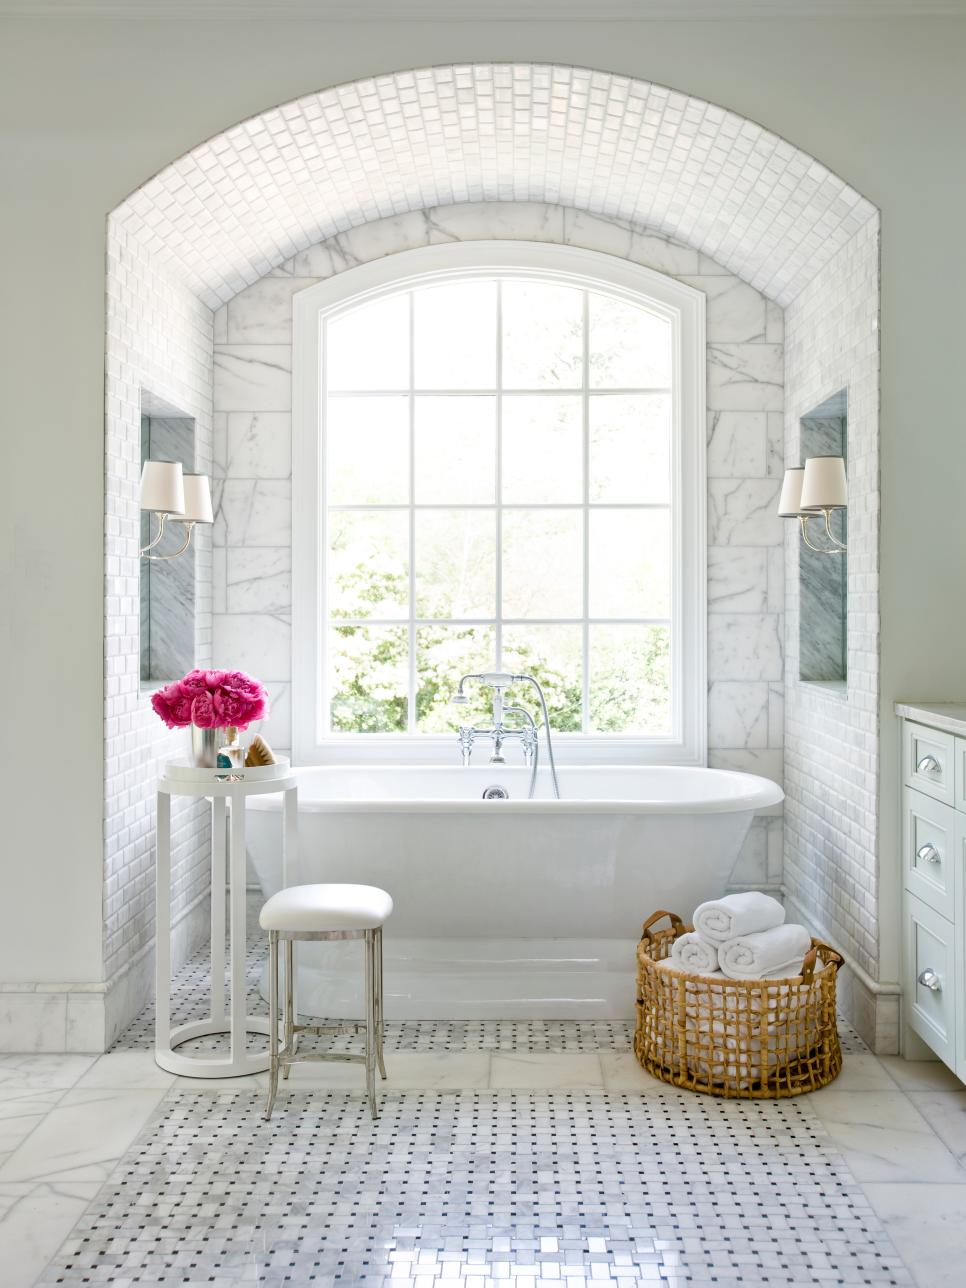 Bathroom Ideas Marble 15 simply chic bathroom tile design ideas | hgtv